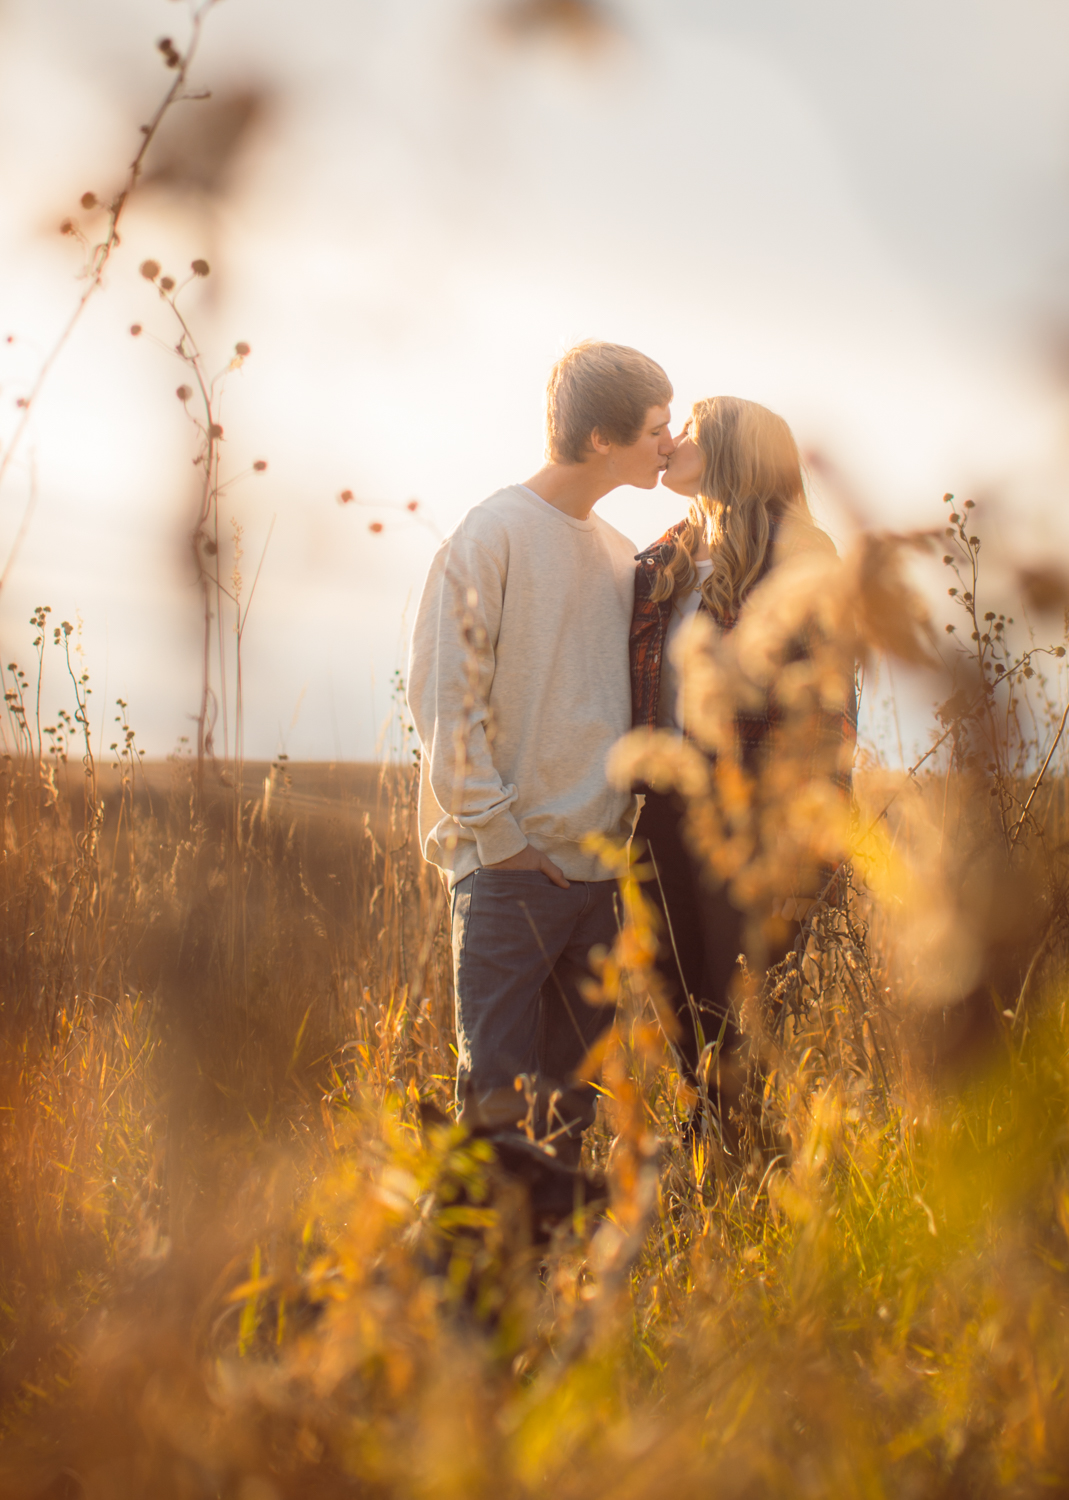 Affordable-Engagement-Photography-Fort-Collins-Colorado_002.jpg